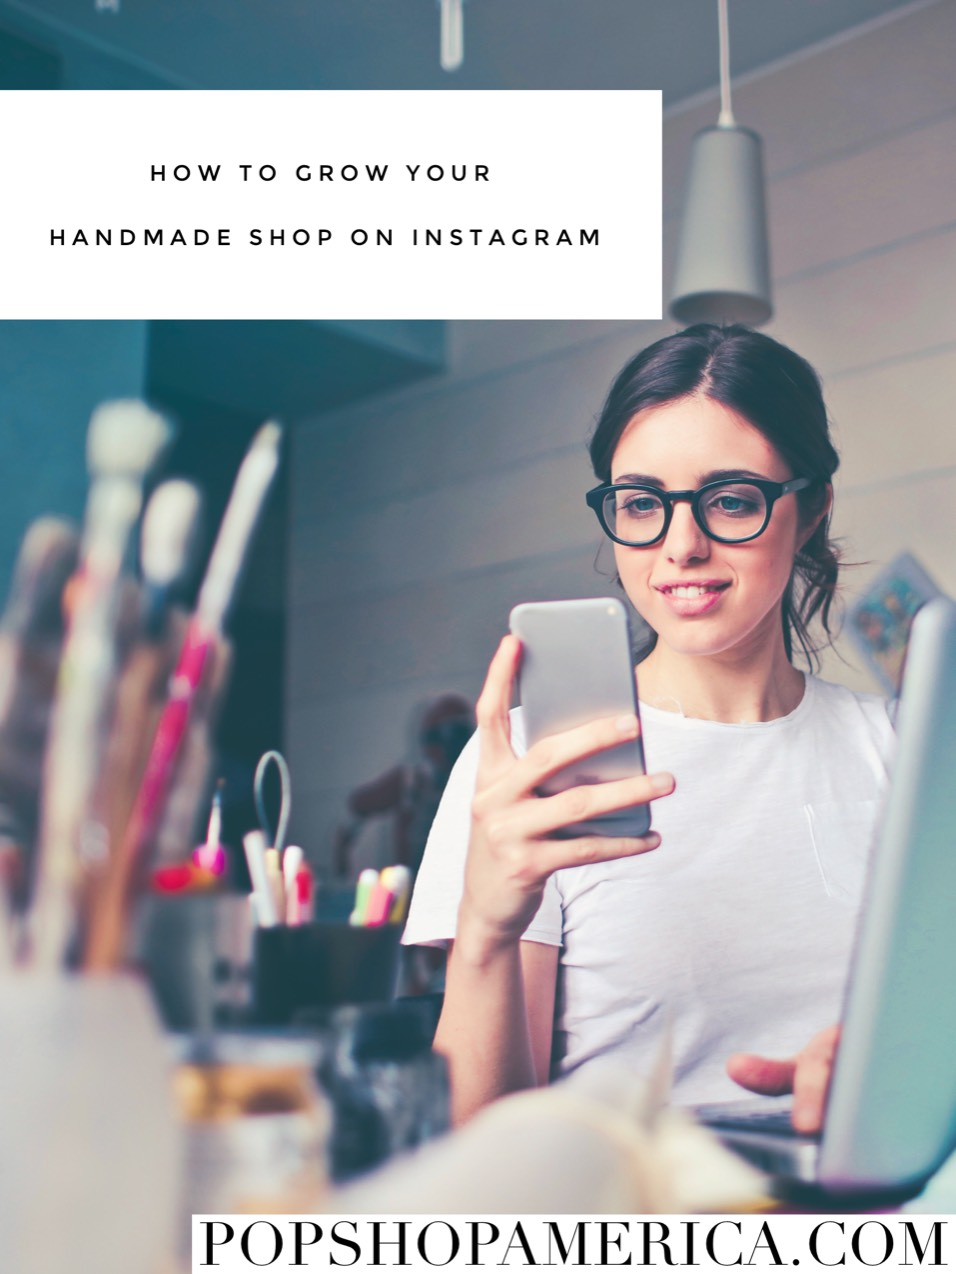 Instagram Accounts That Will Promote Your Handmade Business